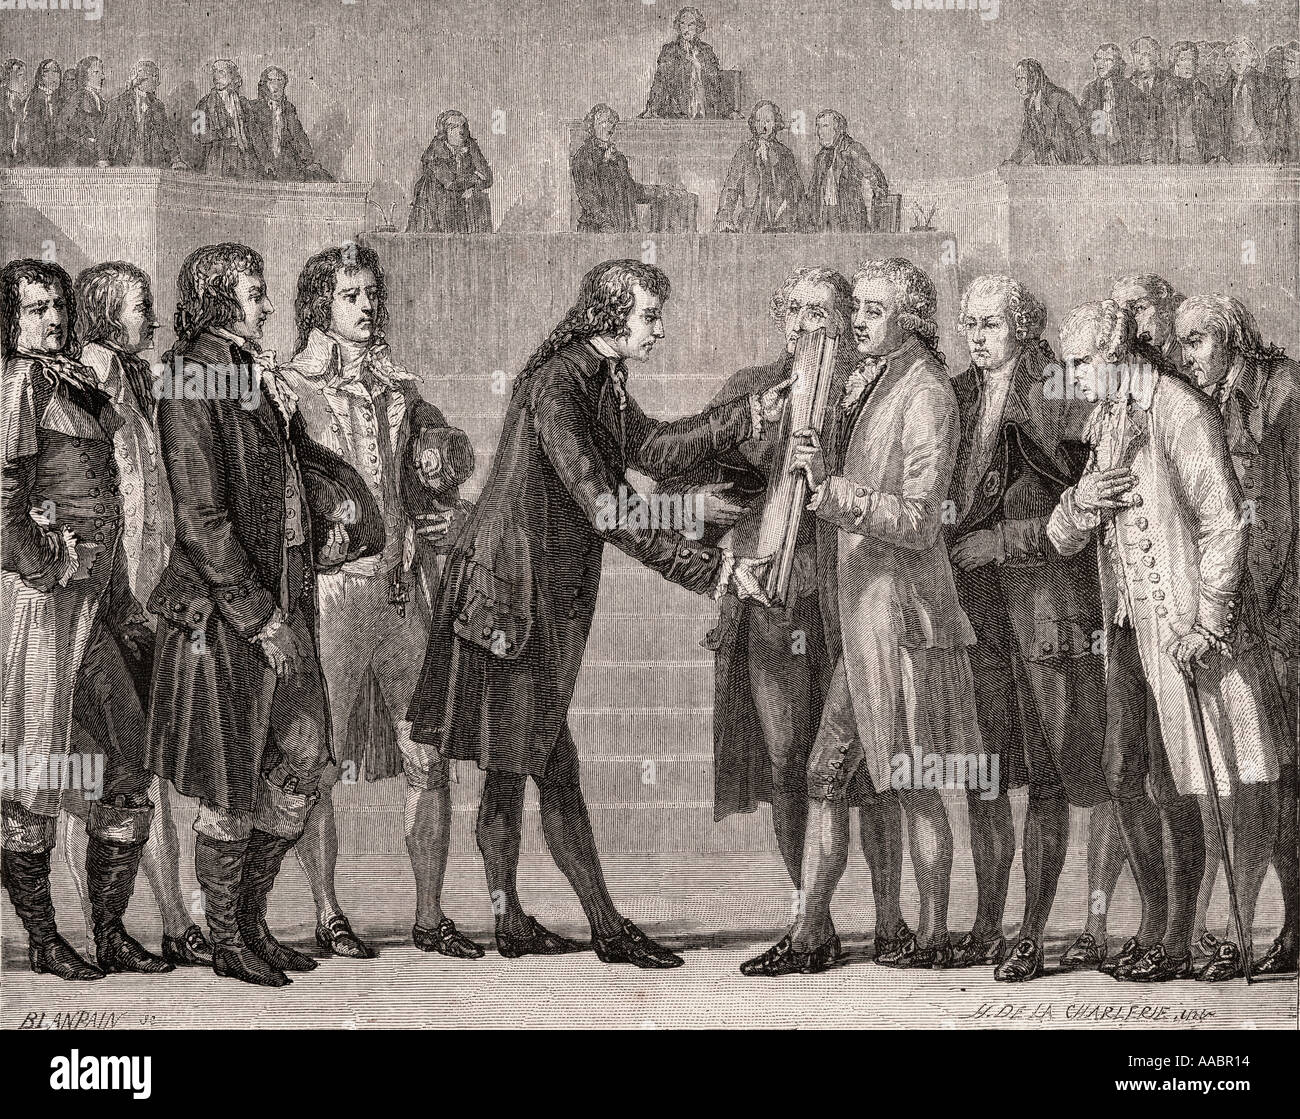 Swearing on the book of the constitution,14 September, 1791. Louis XVI, 1754 - 1793. King of France, 1774 - 1792. - Stock Image